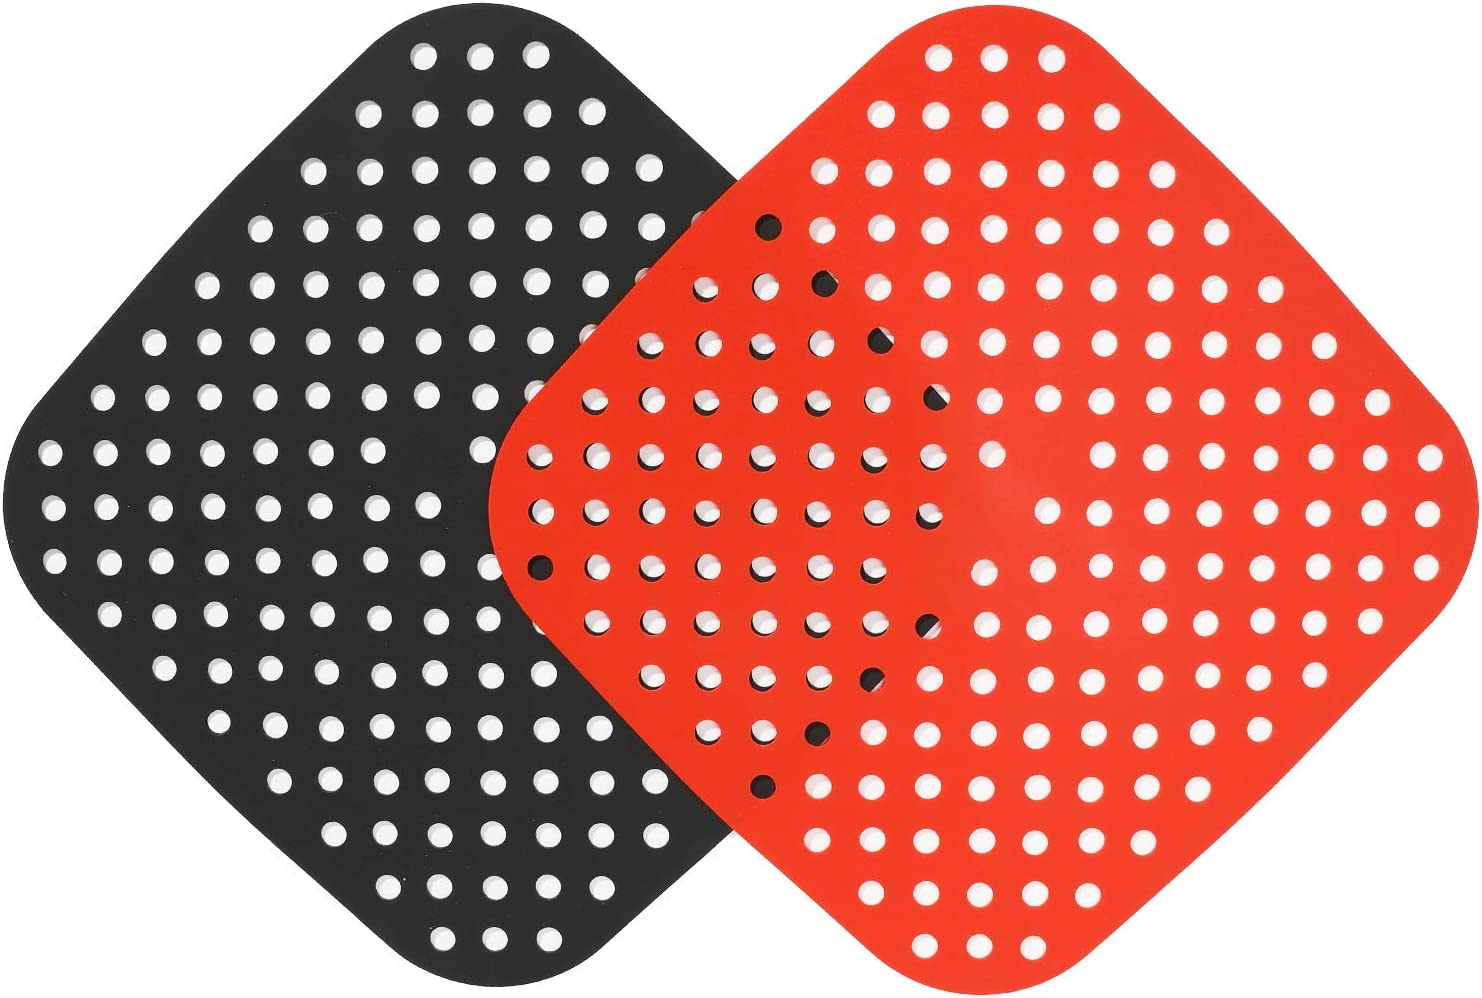 Reusable Air Fryer Liners – 8.5 Inch Square, Non-Stick Silicone Air Fryer Mats | Air Fryer Accessories For Cosori 5.8 Qt, Ninja, Instant Pot Vortex, Phillips, Power XL, and More | BPA Free (2-Pack)